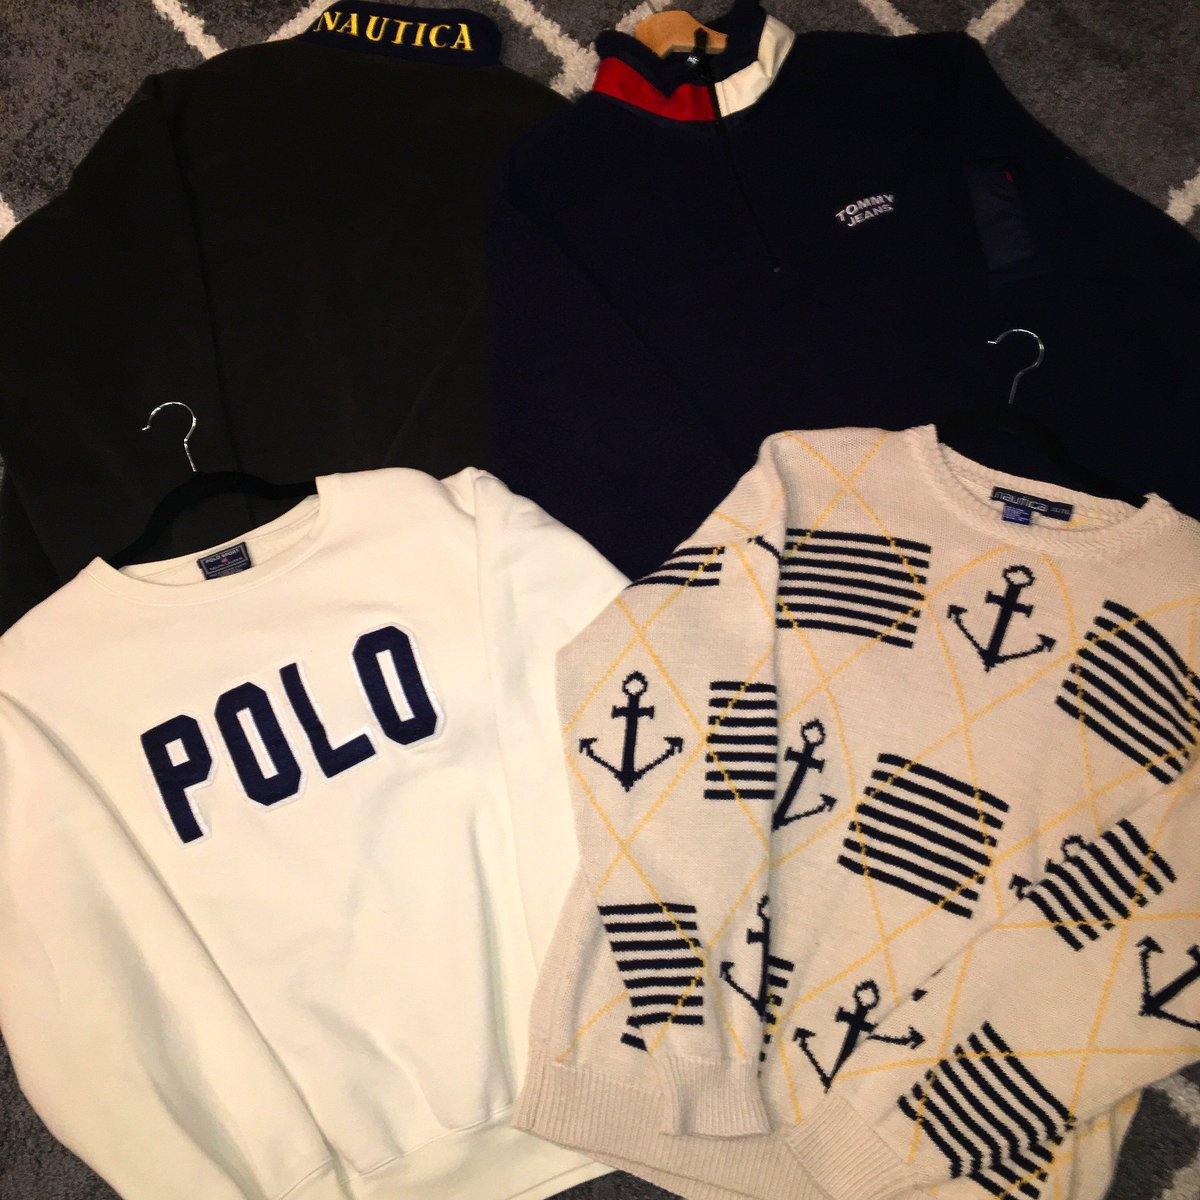 13f73f953 ...  18 Nautica-L  20 Polo-L  18 Tommy Hilfiger-XL  20 Chaps-SOLD VINTAGE  HOUSTON ROCKETS AND SUPREME GUESS ALSO AVAILABLE!pic.twitter.com QTmrpv0IEG